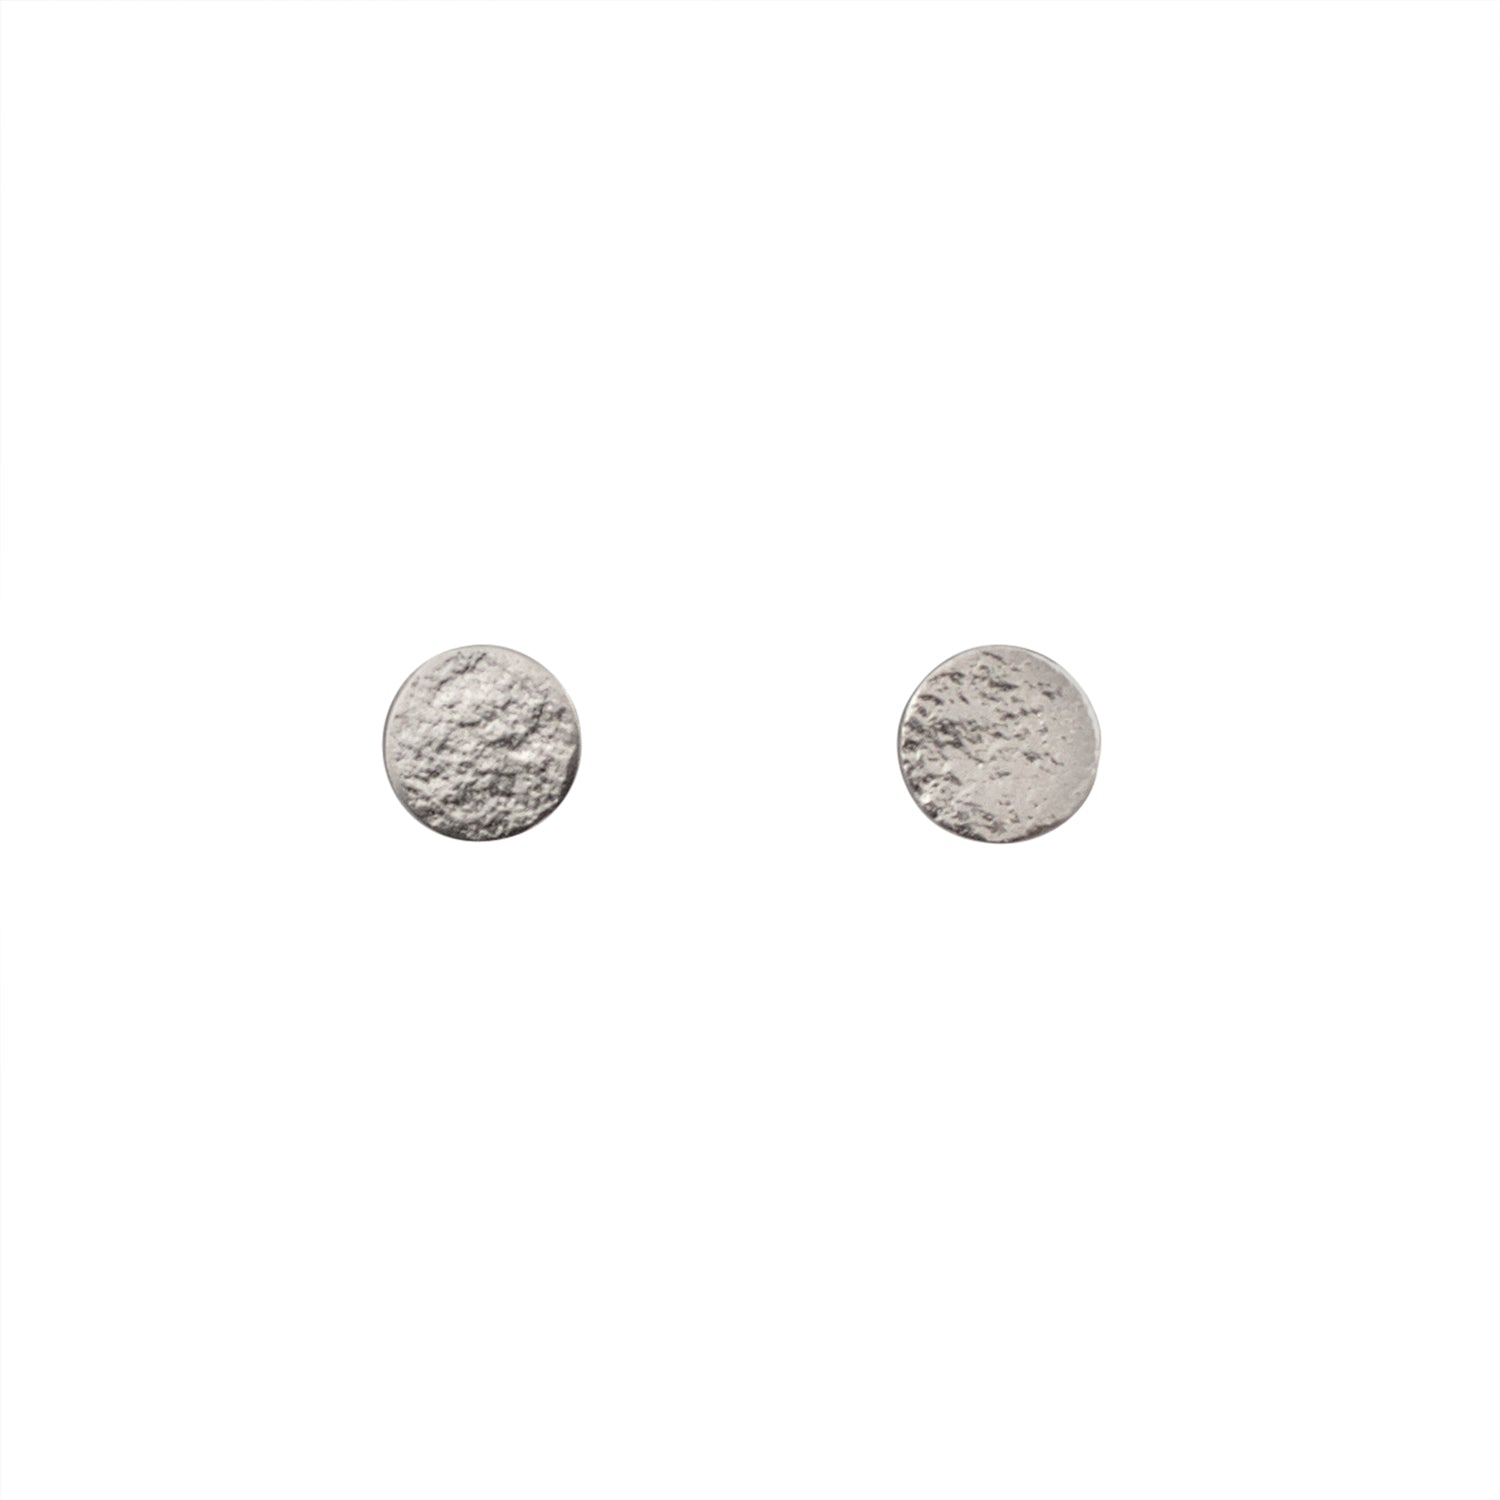 Silver Stud Earrings in Medium